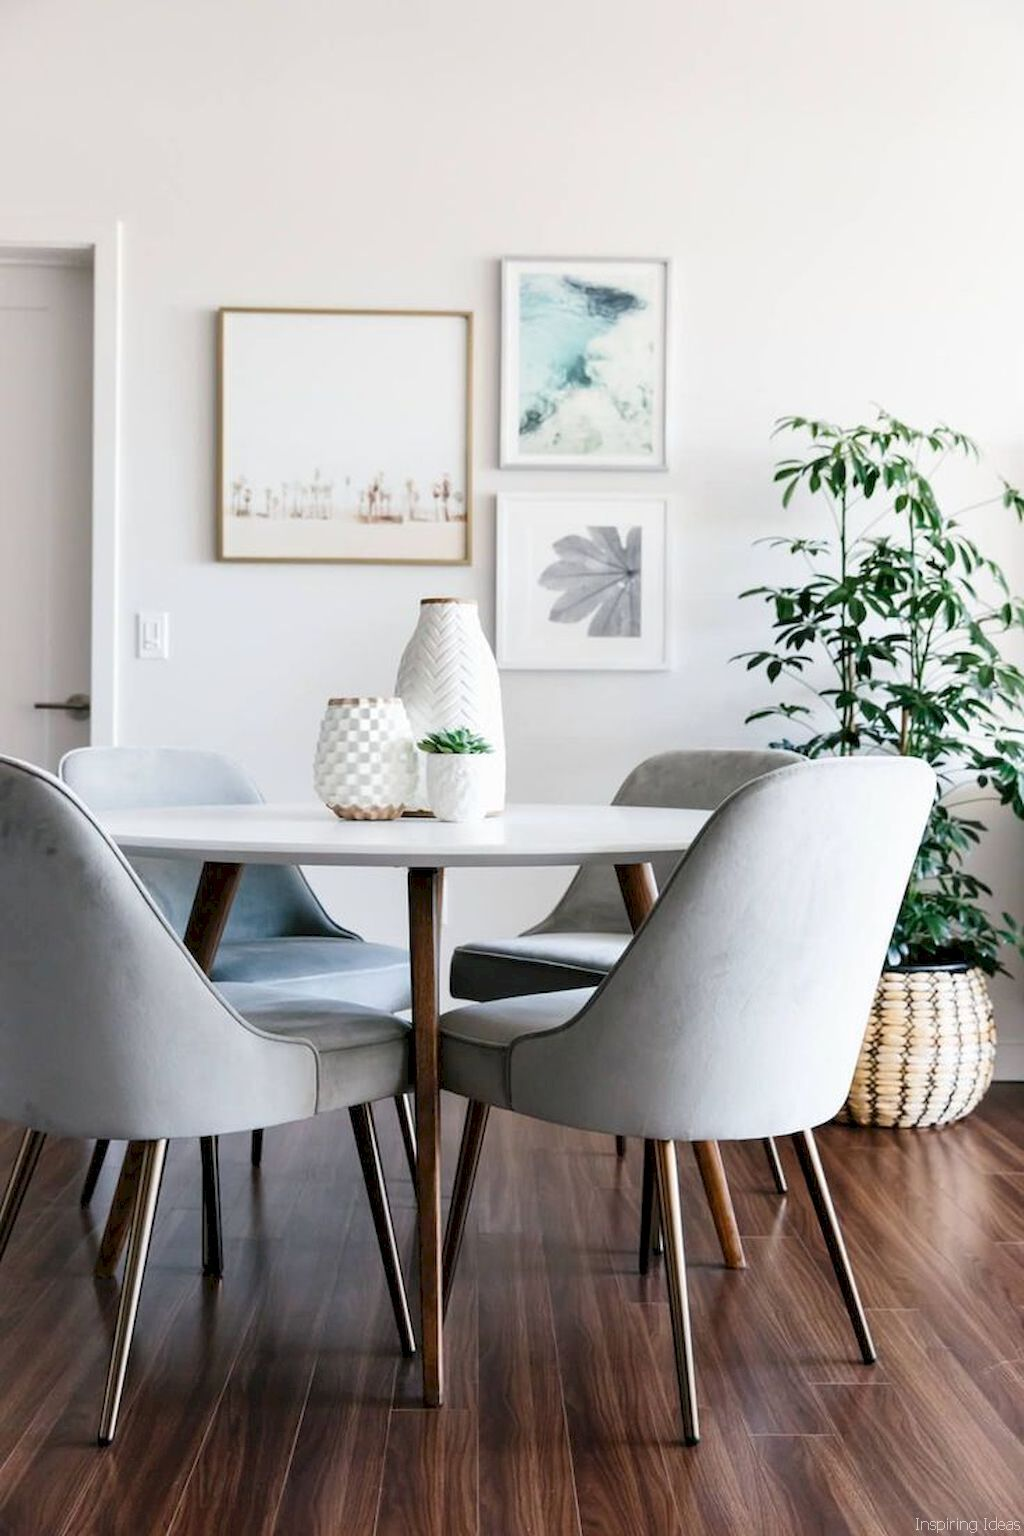 60 Functional Small Dining Room Decor Ideas images